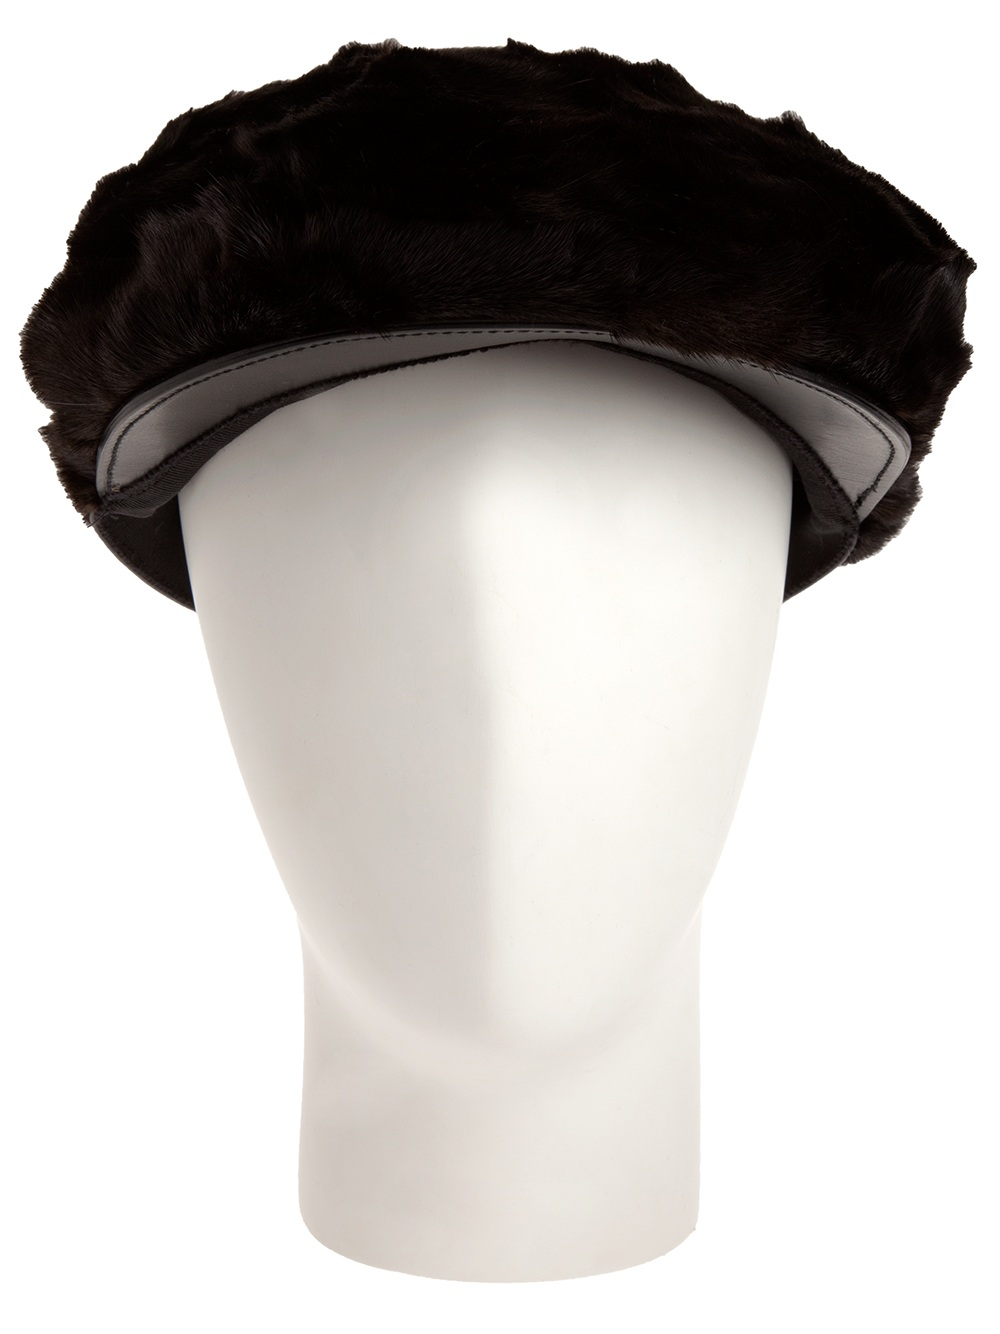 Lyst - Burberry Prorsum Mink Hat in Black 408964ccbea